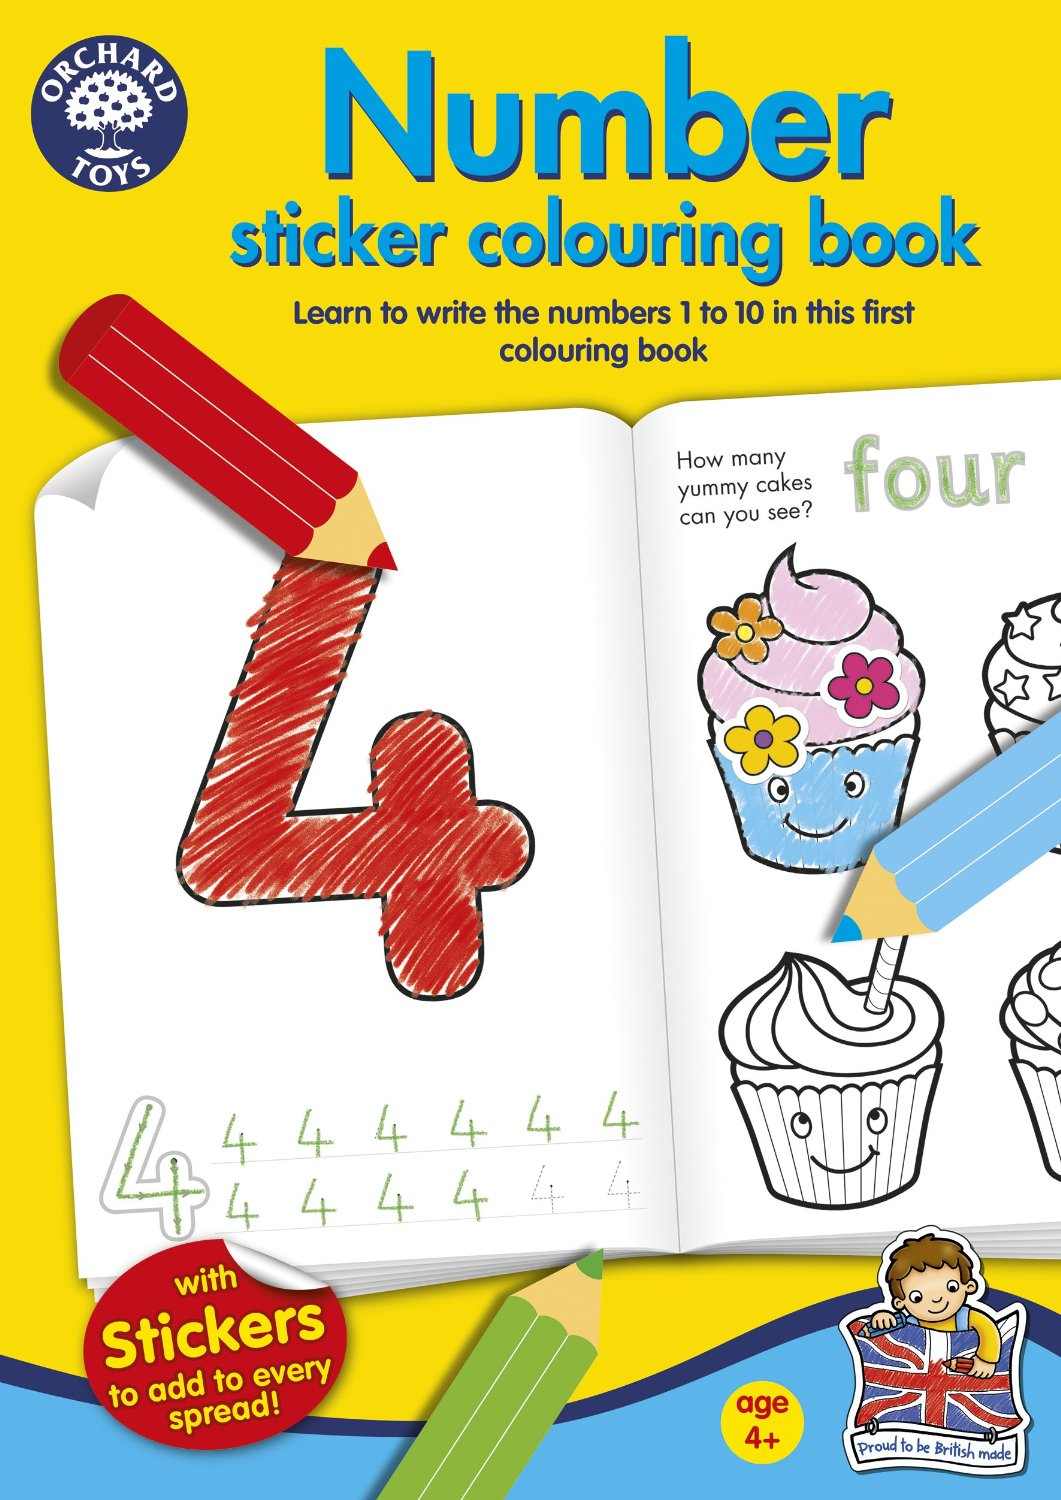 An image of Orchard Toys Number Colouring Book